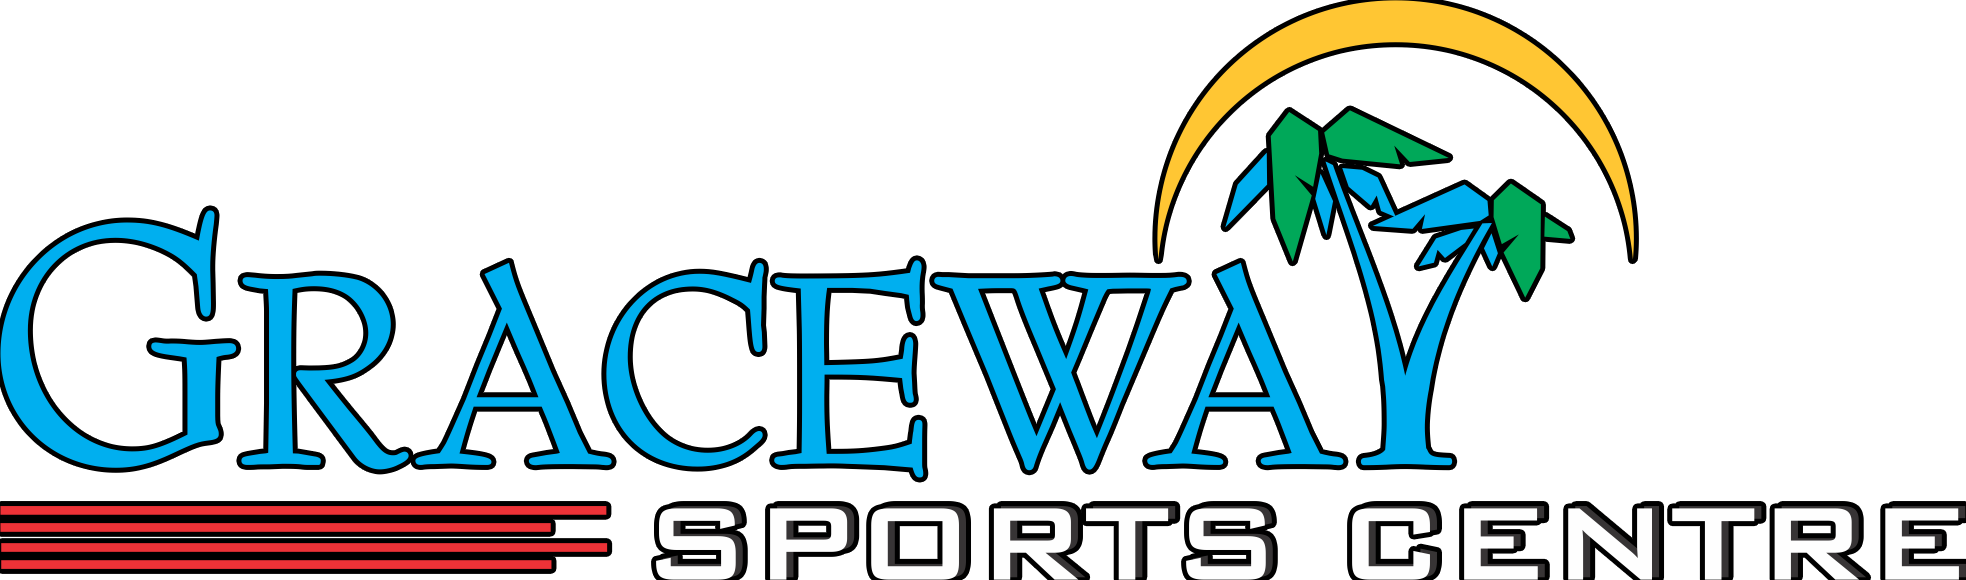 Clinics | Graceway Sports Center